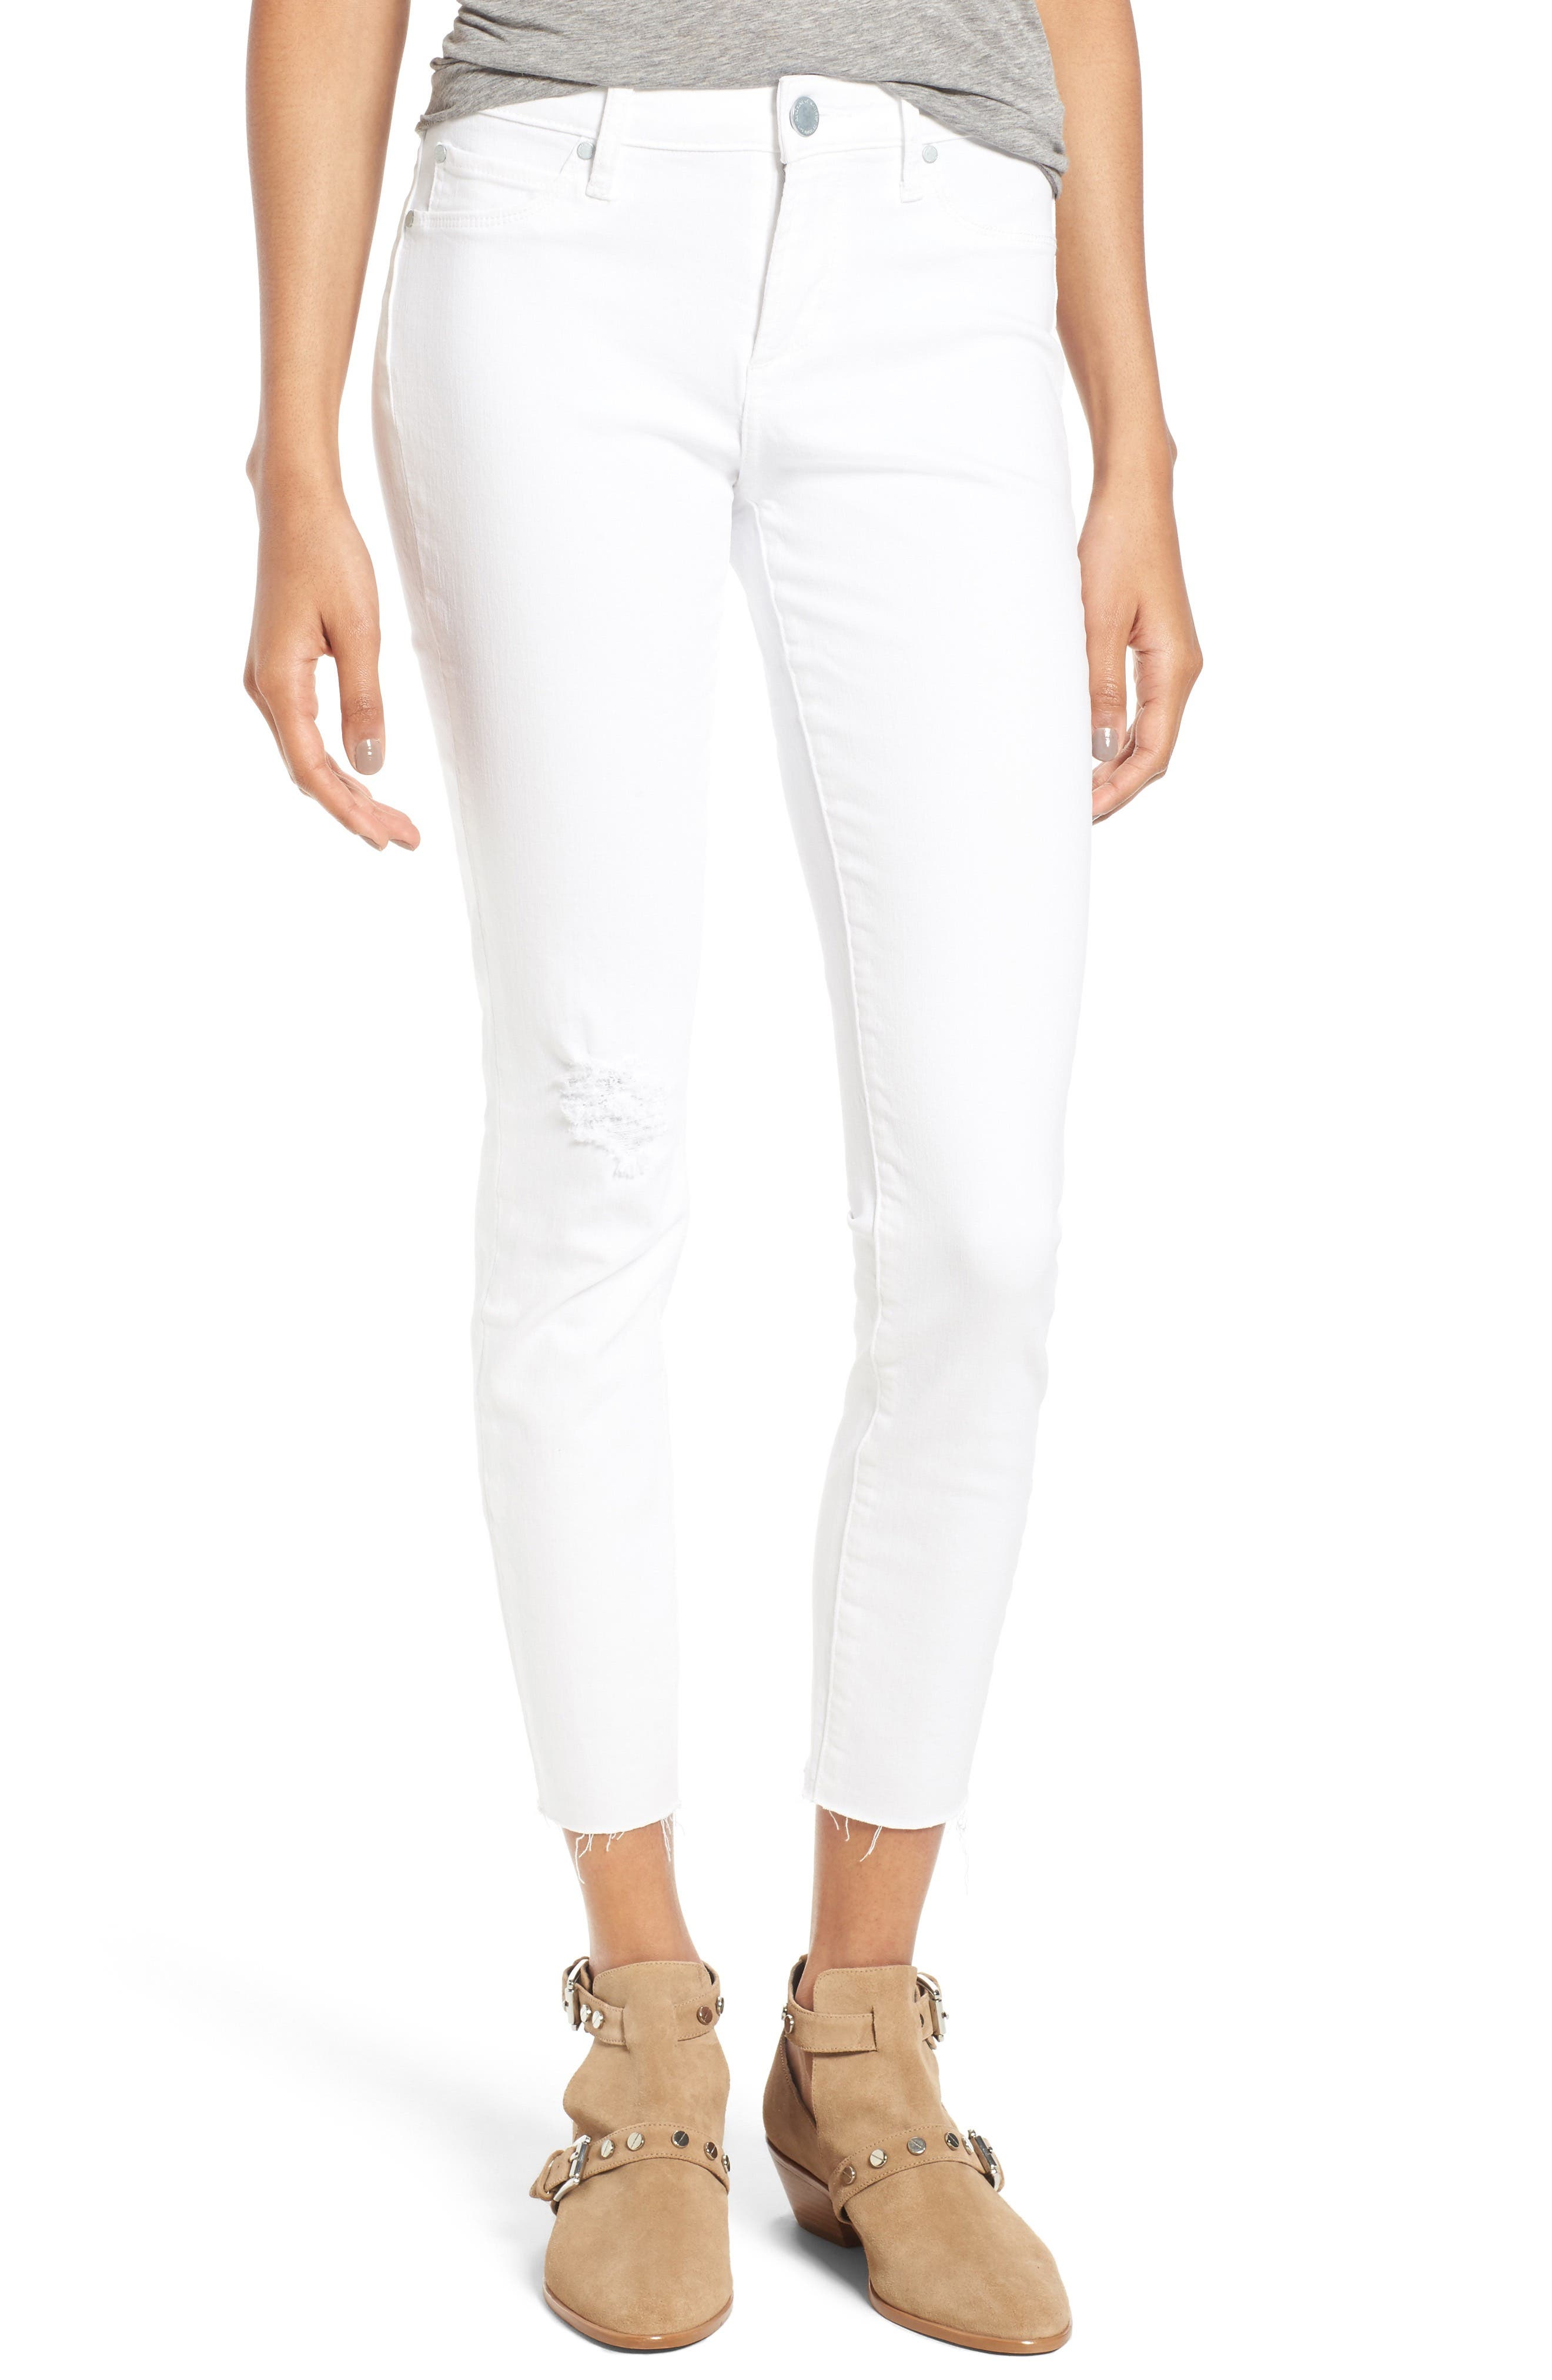 Carly Skinny Crop Jeans,                             Main thumbnail 1, color,                             110